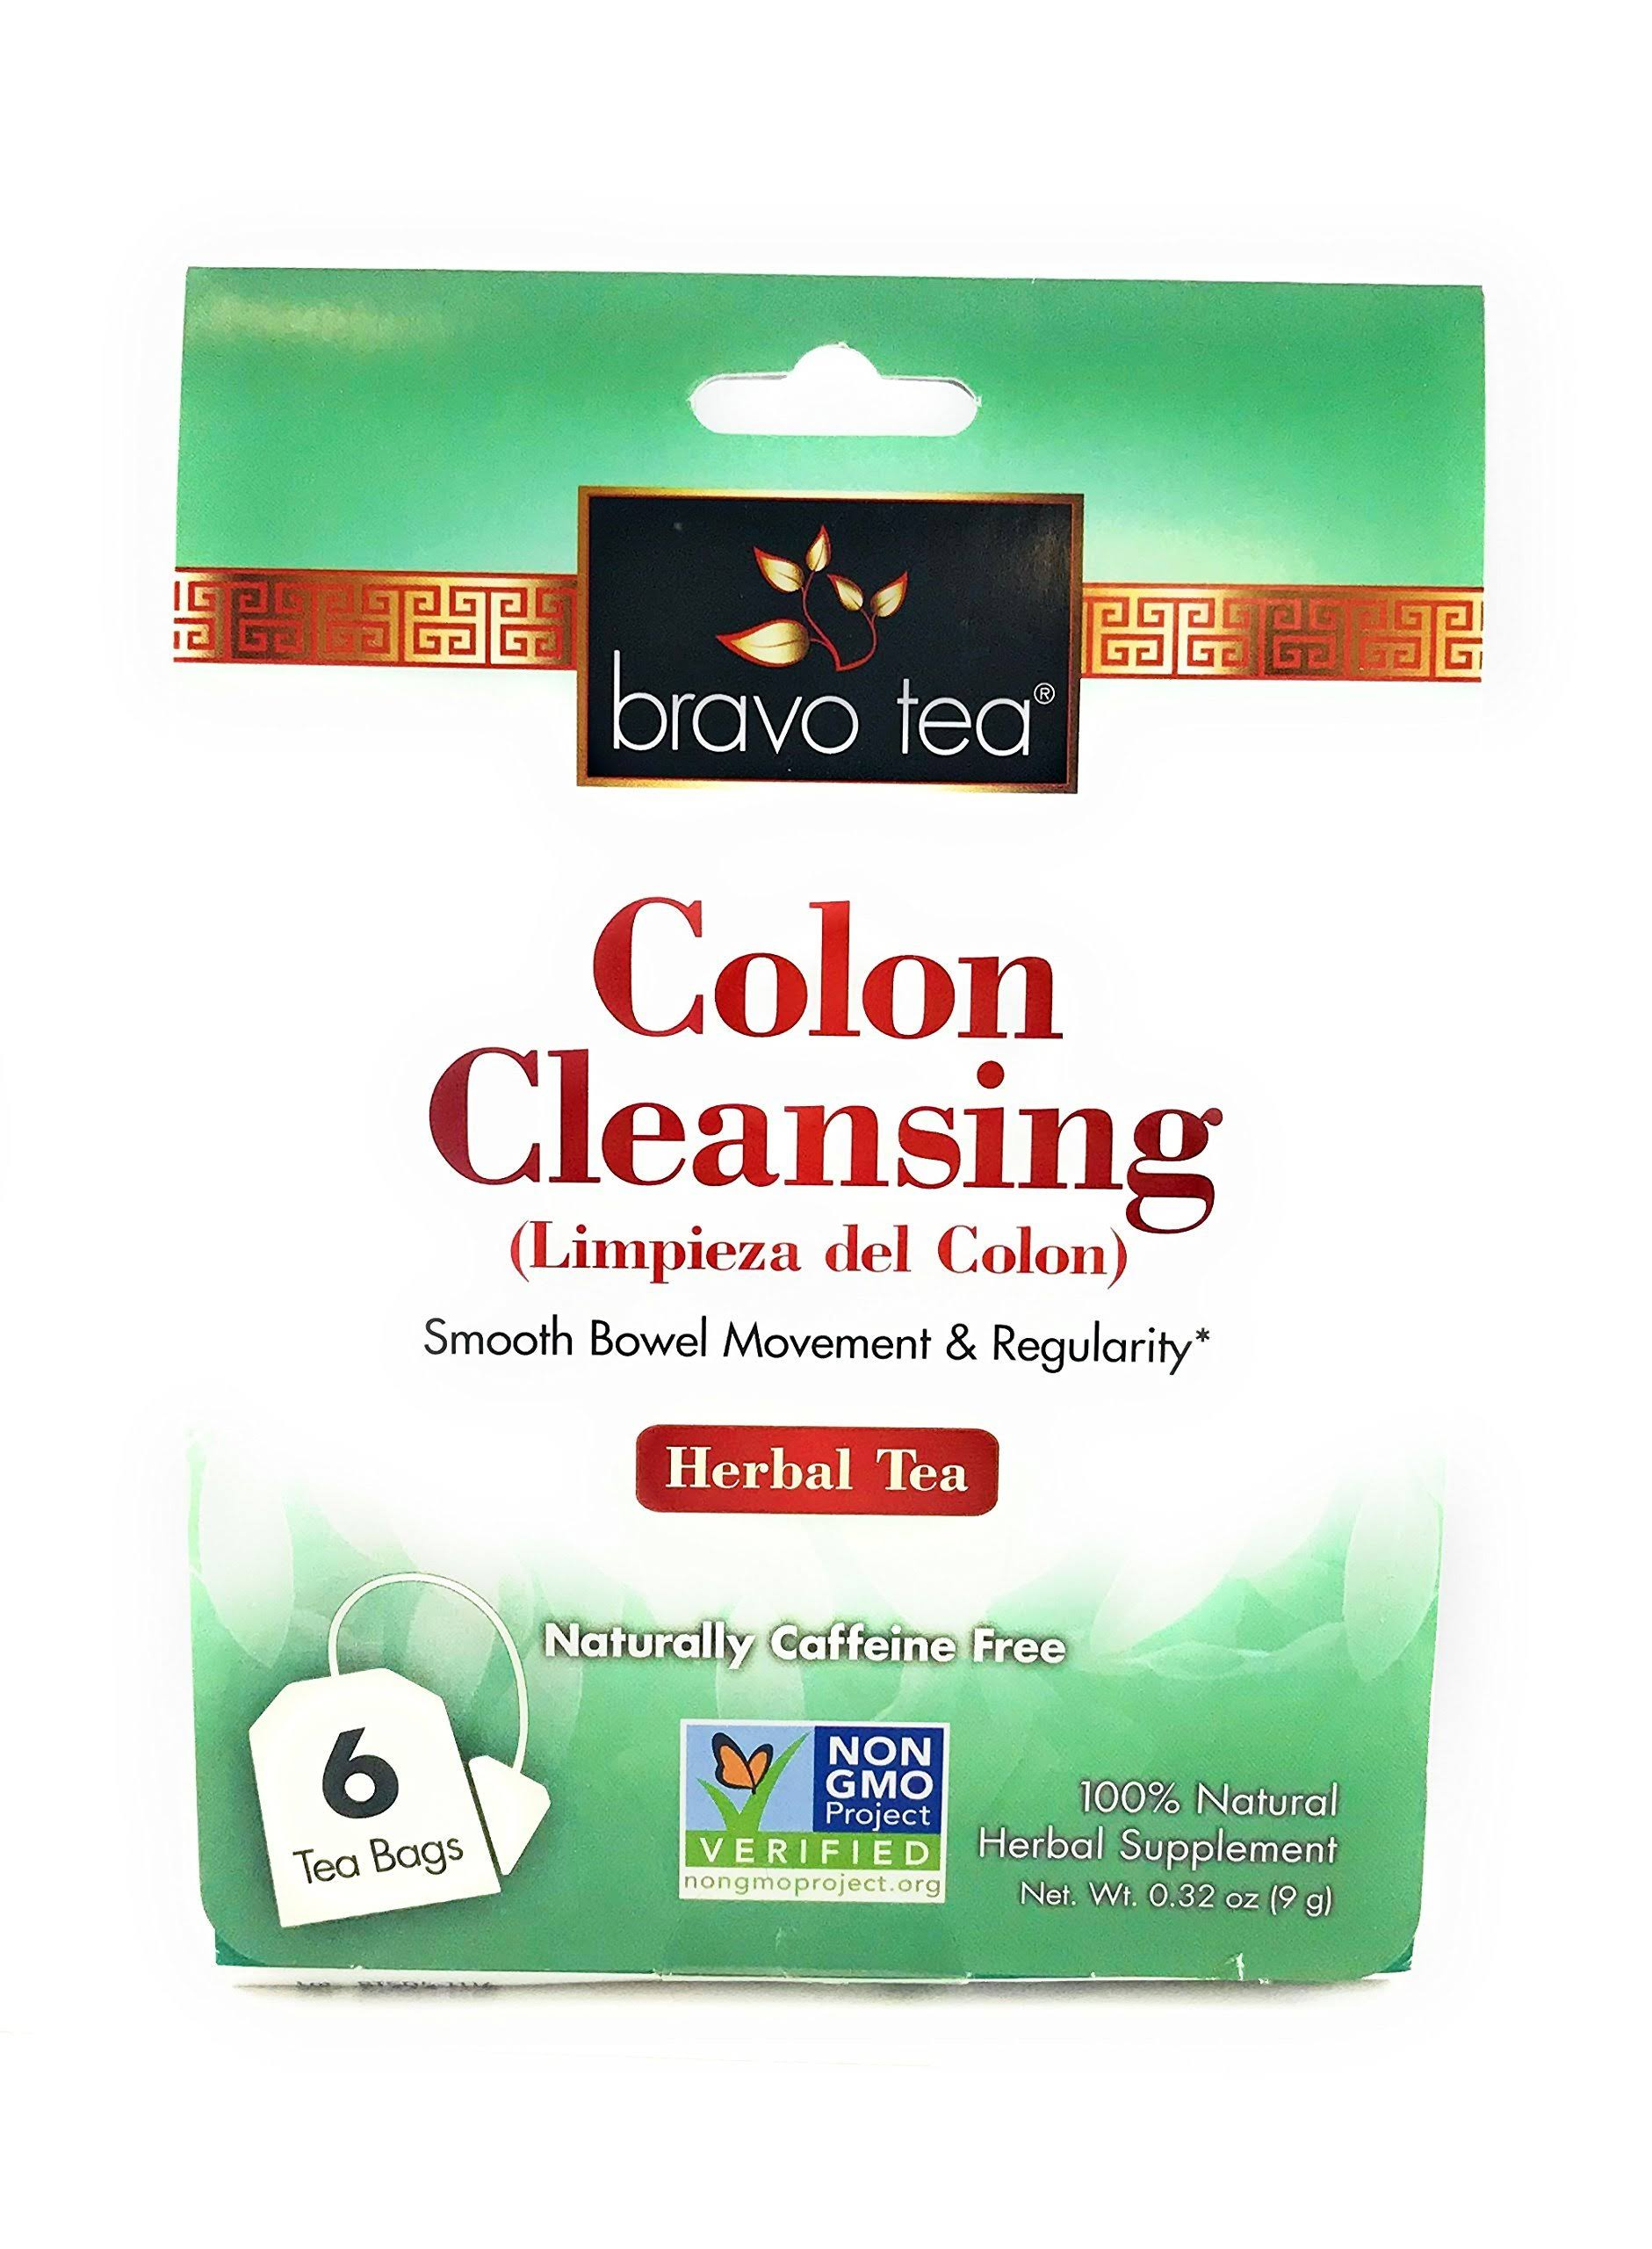 Bravo Tea Colon Cleansing Herbal Tea - 20ct